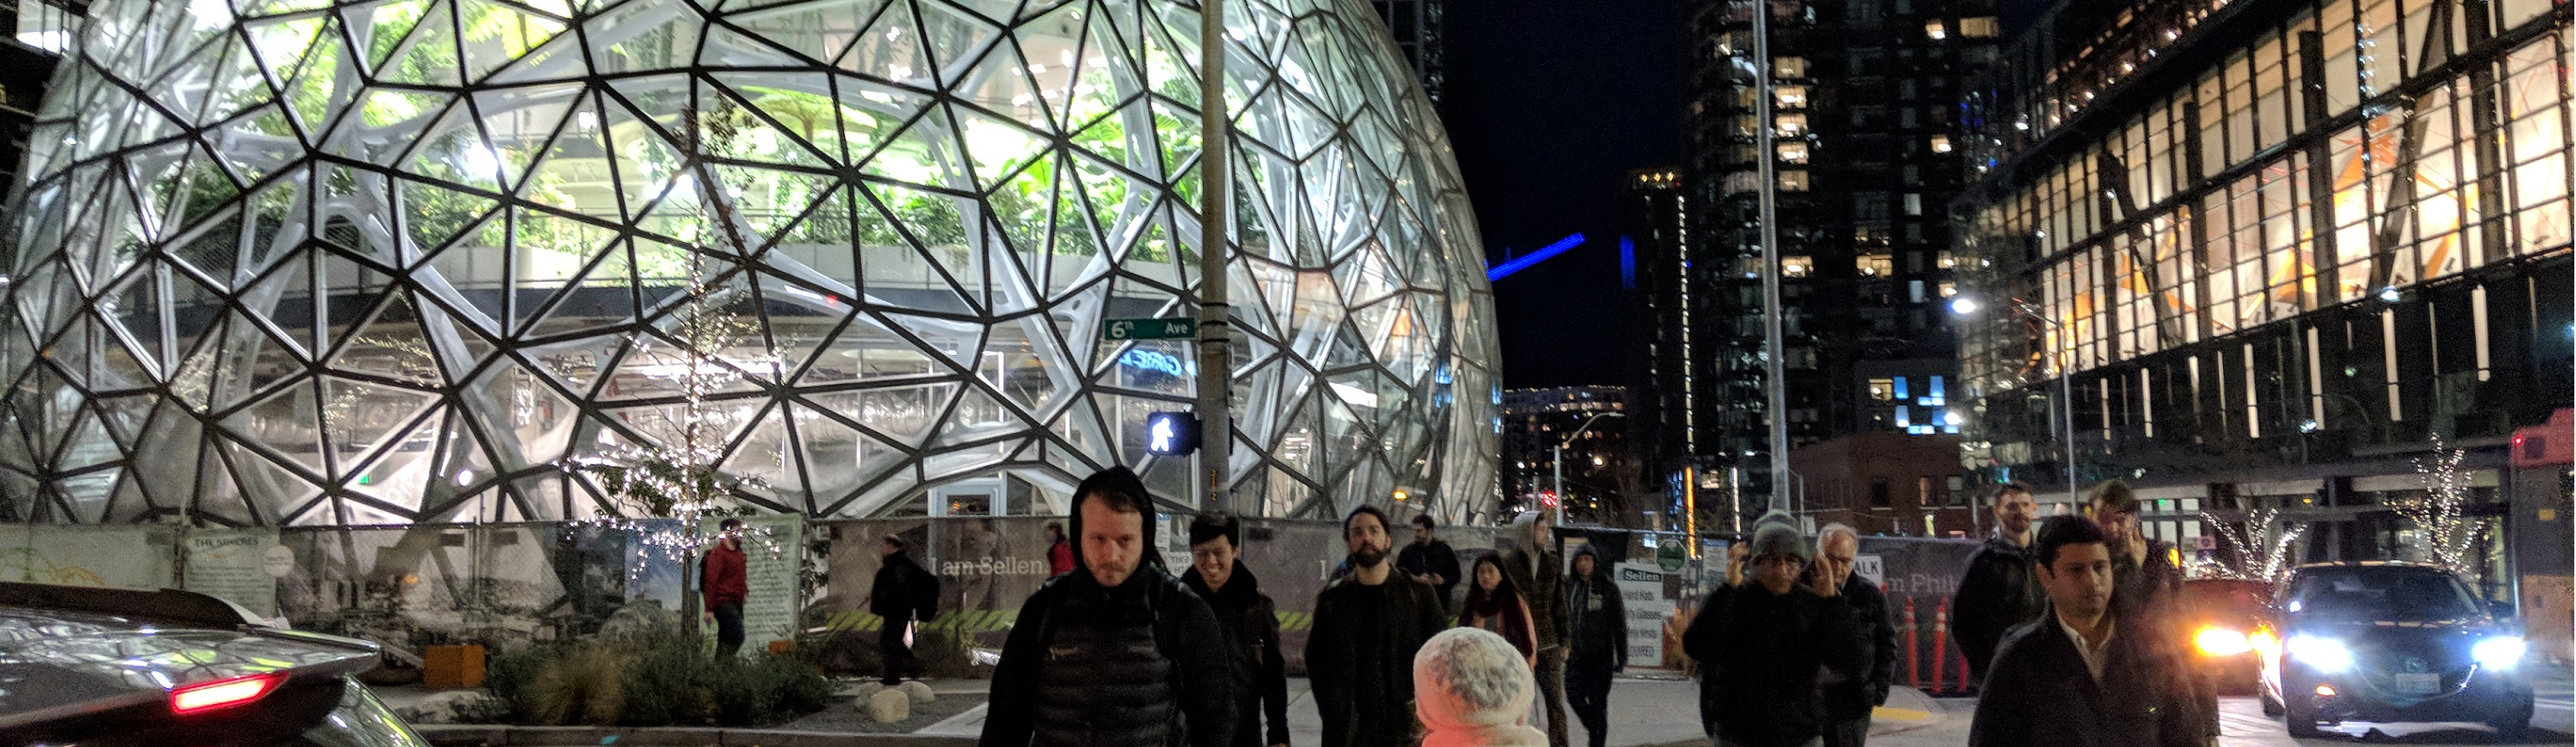 Amazon headquarters at night